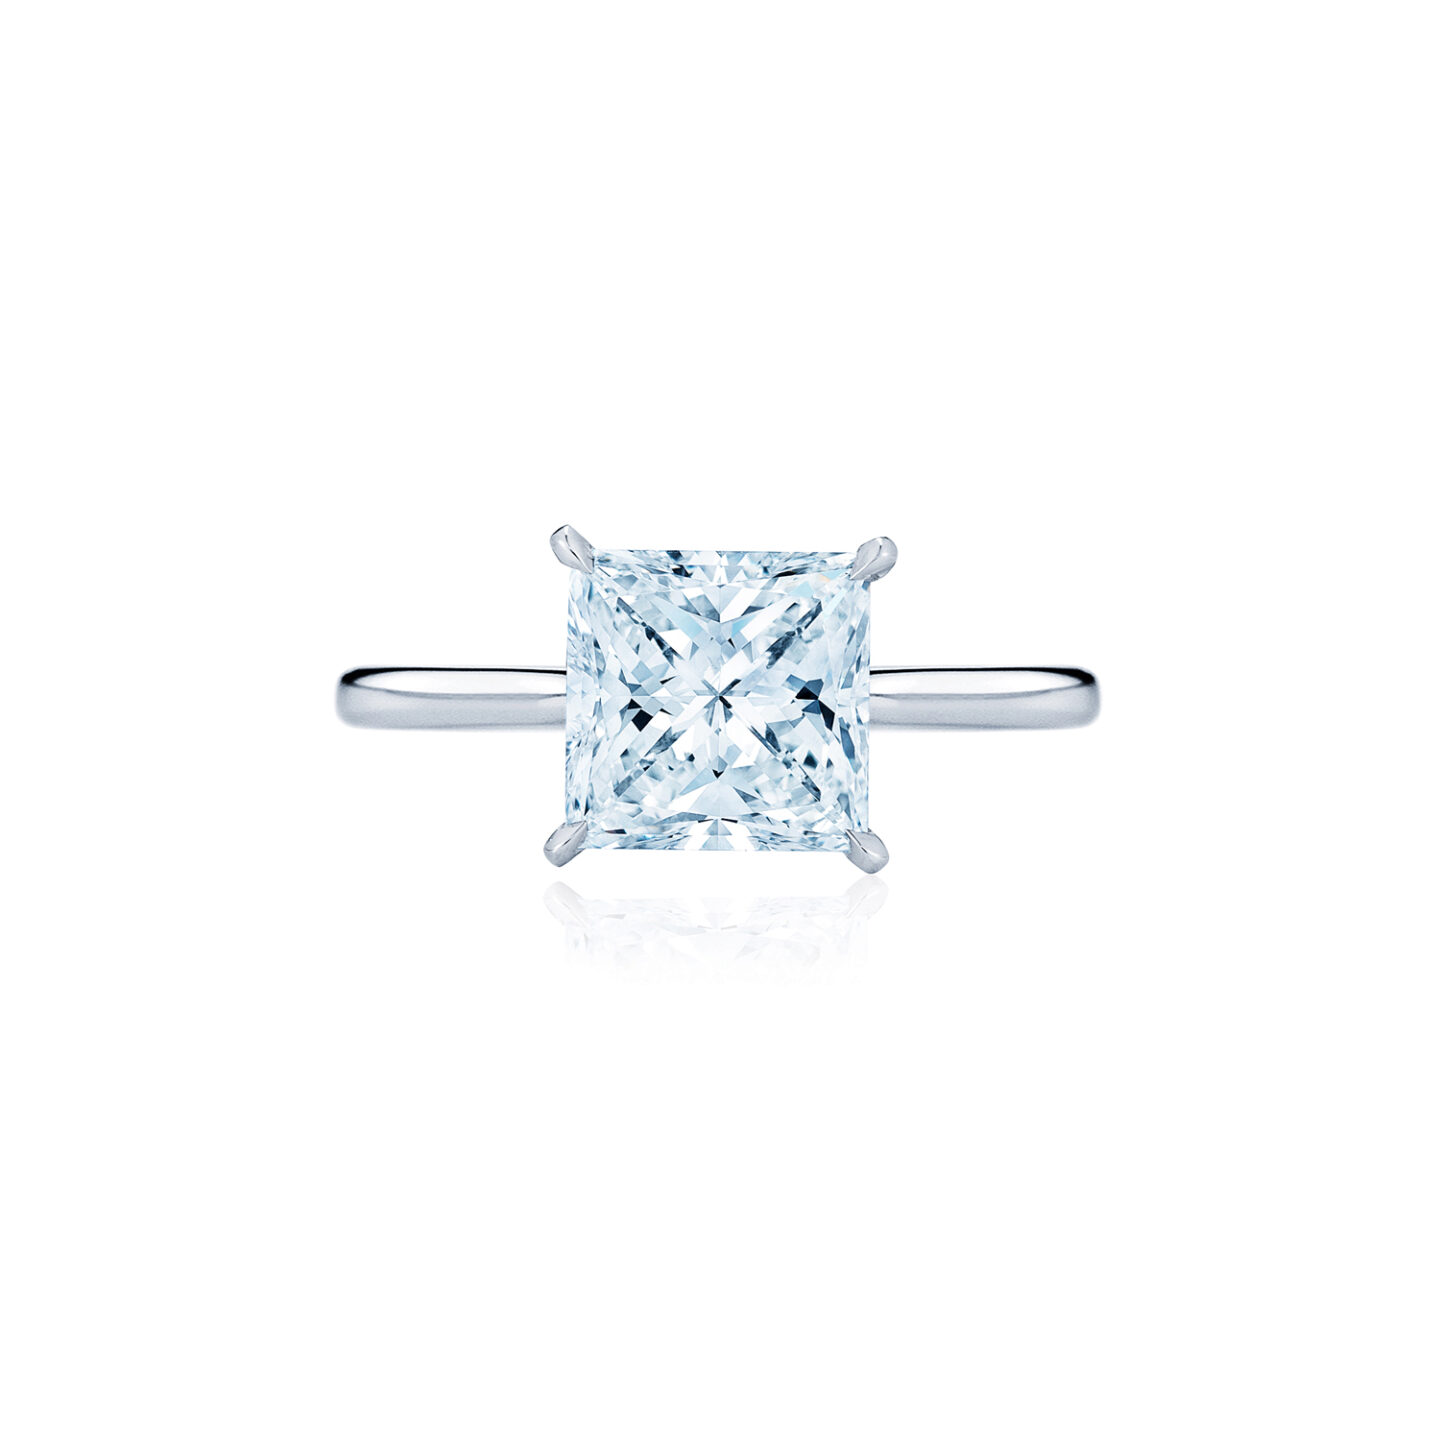 The Kwiat Setting Princess Cut Diamond Engagement Ring In Platinum Kwiat